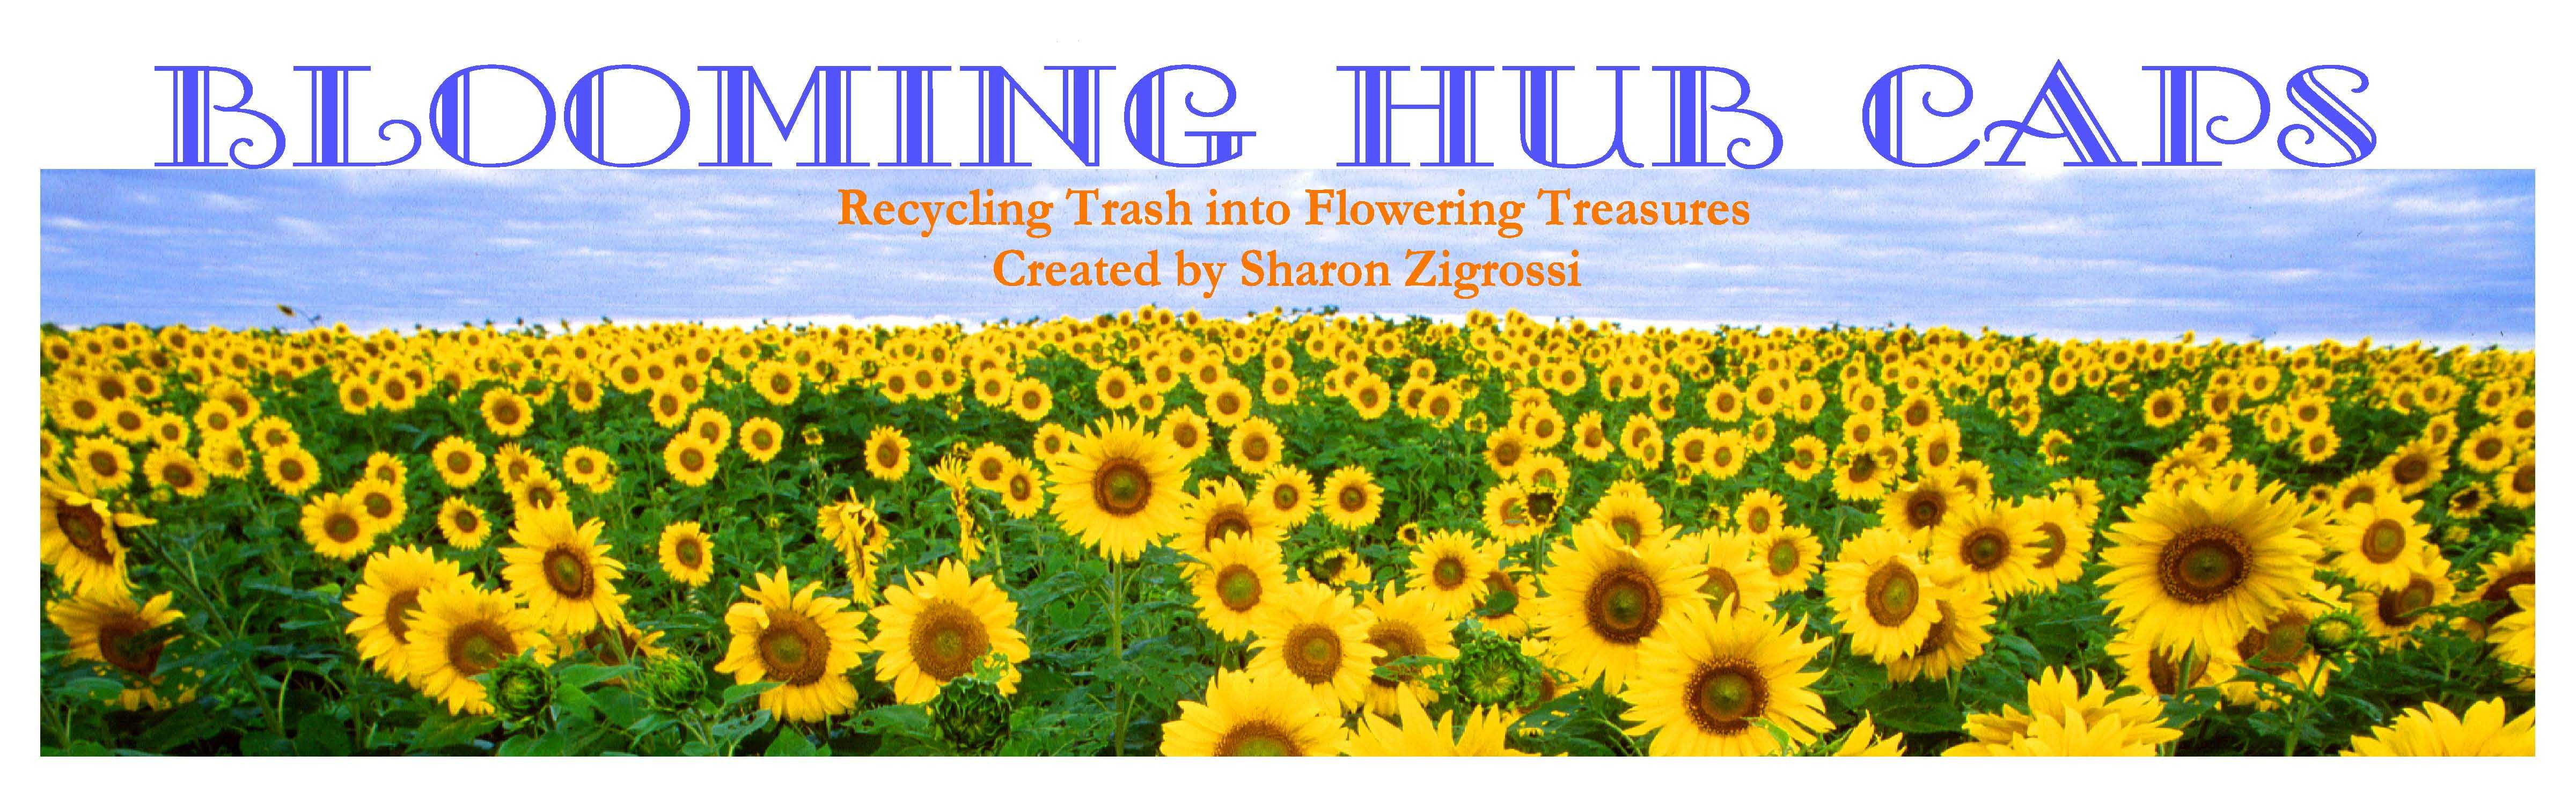 Recycling Trash into Flowering Treasures  � 2009